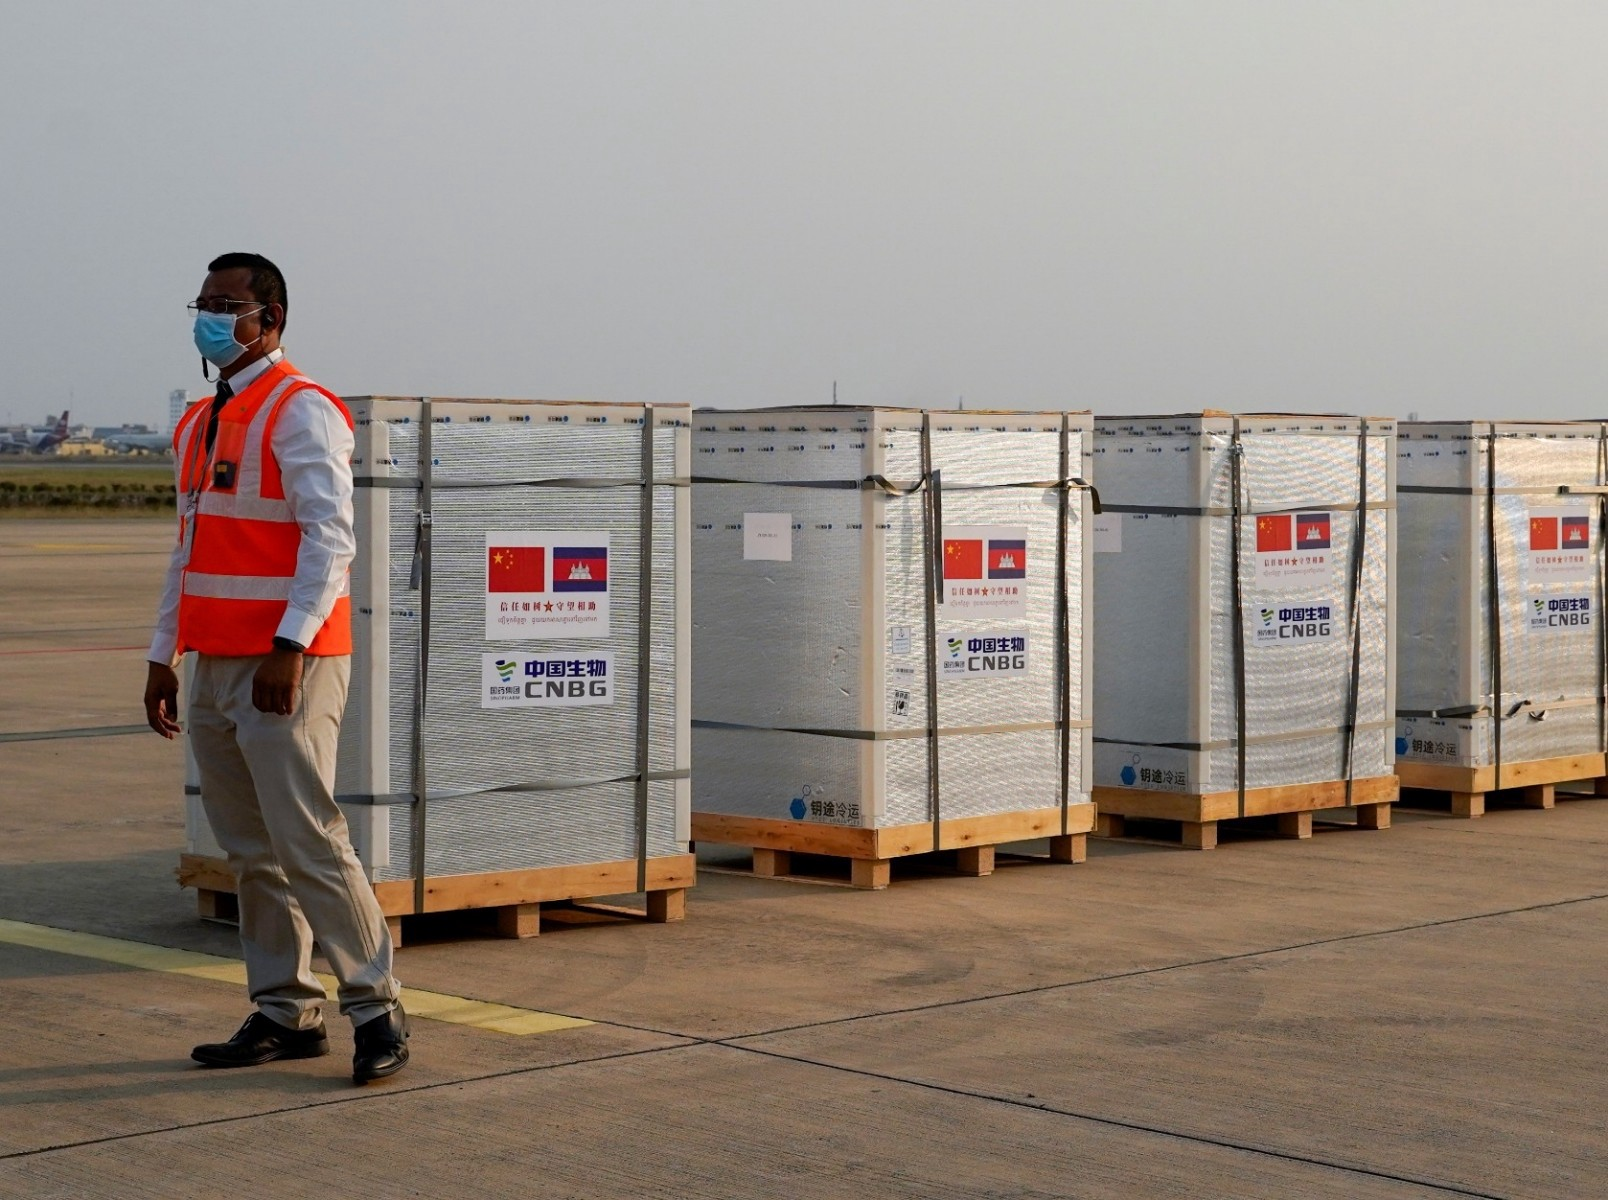 COVID-19 vaccines donated by China at the Phnom Penh International Airport in Cambodia, February 7, 2021. Photo by Cindy Liu/Reuters